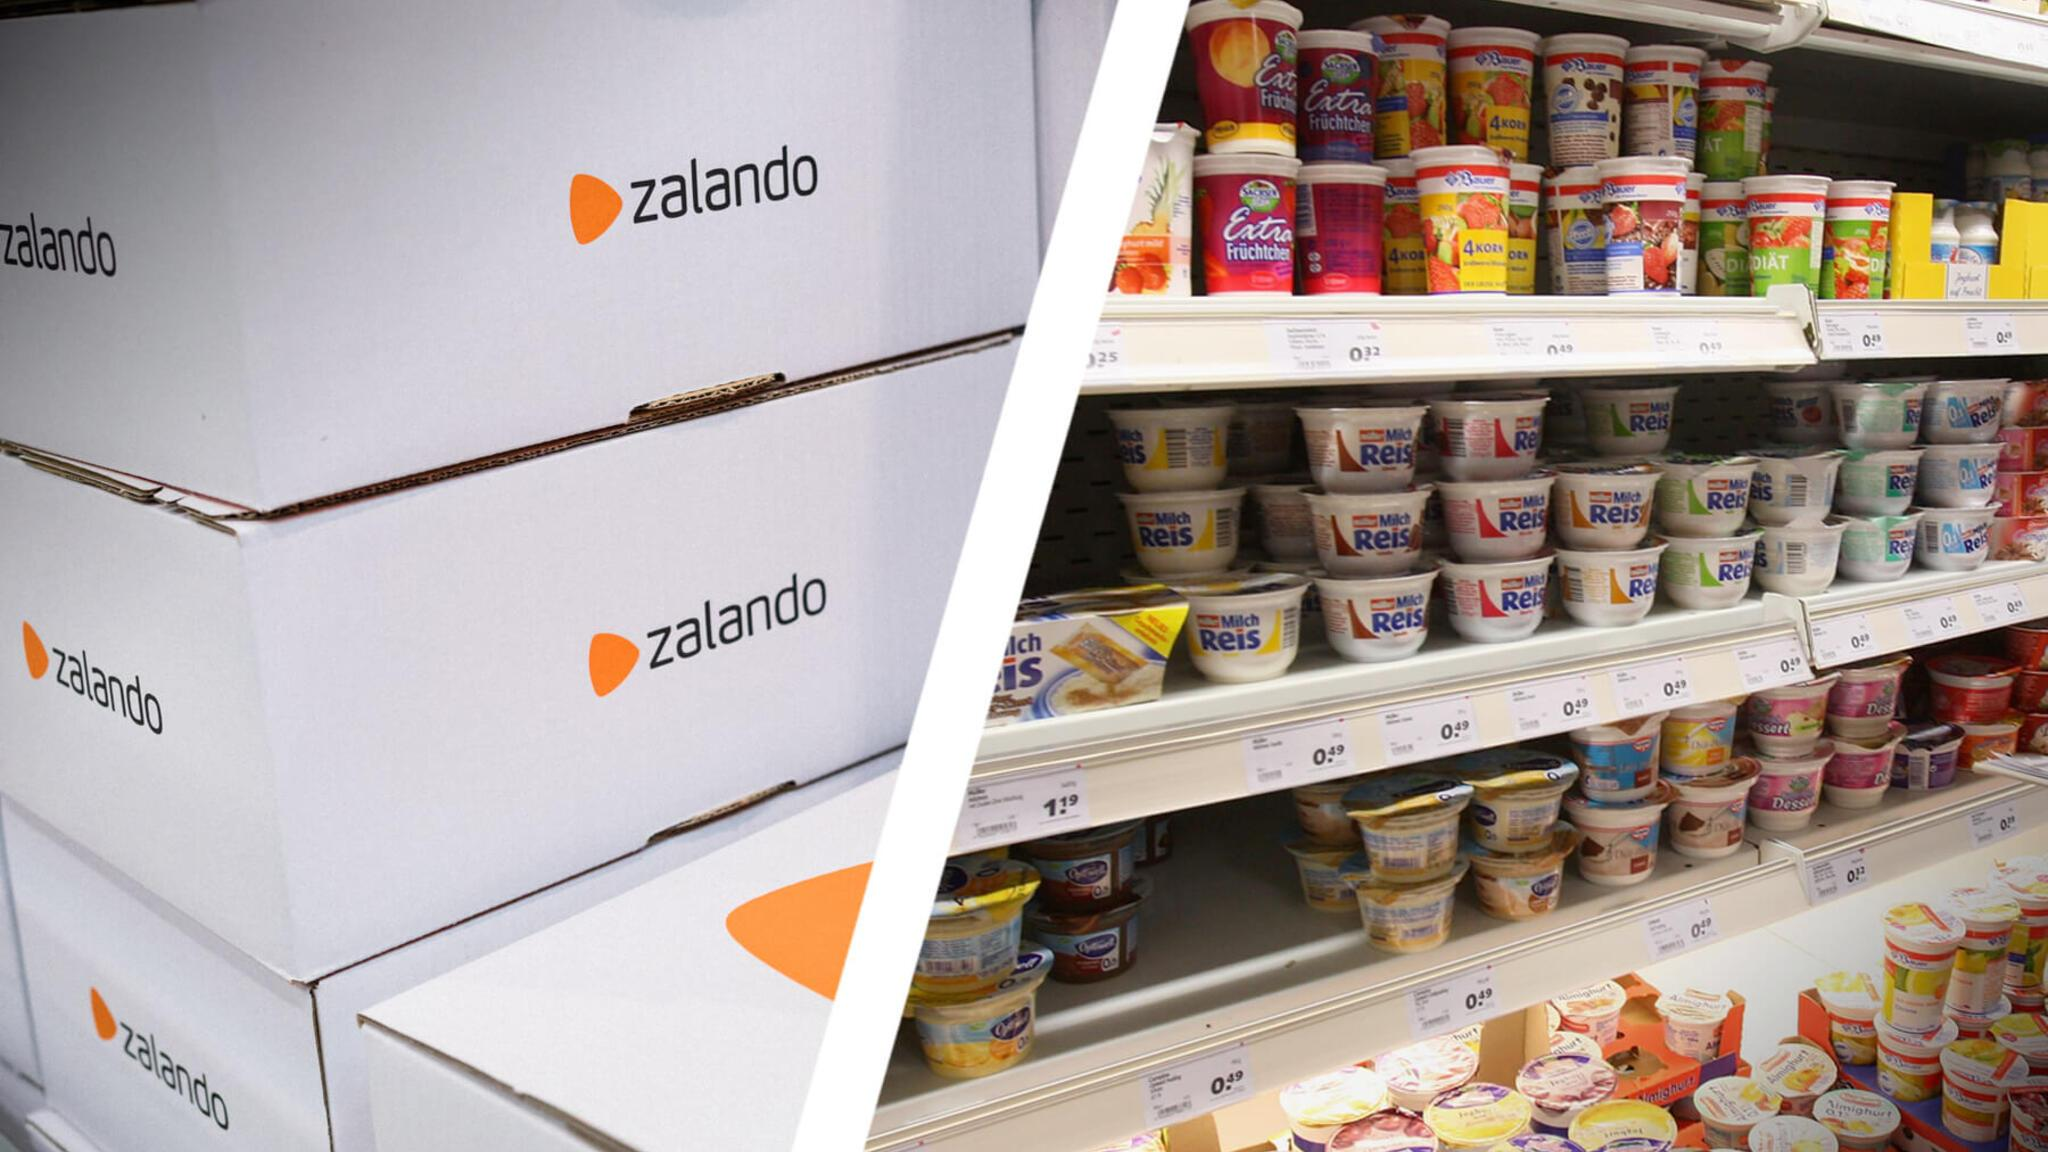 Zalando vs. Ladenregal